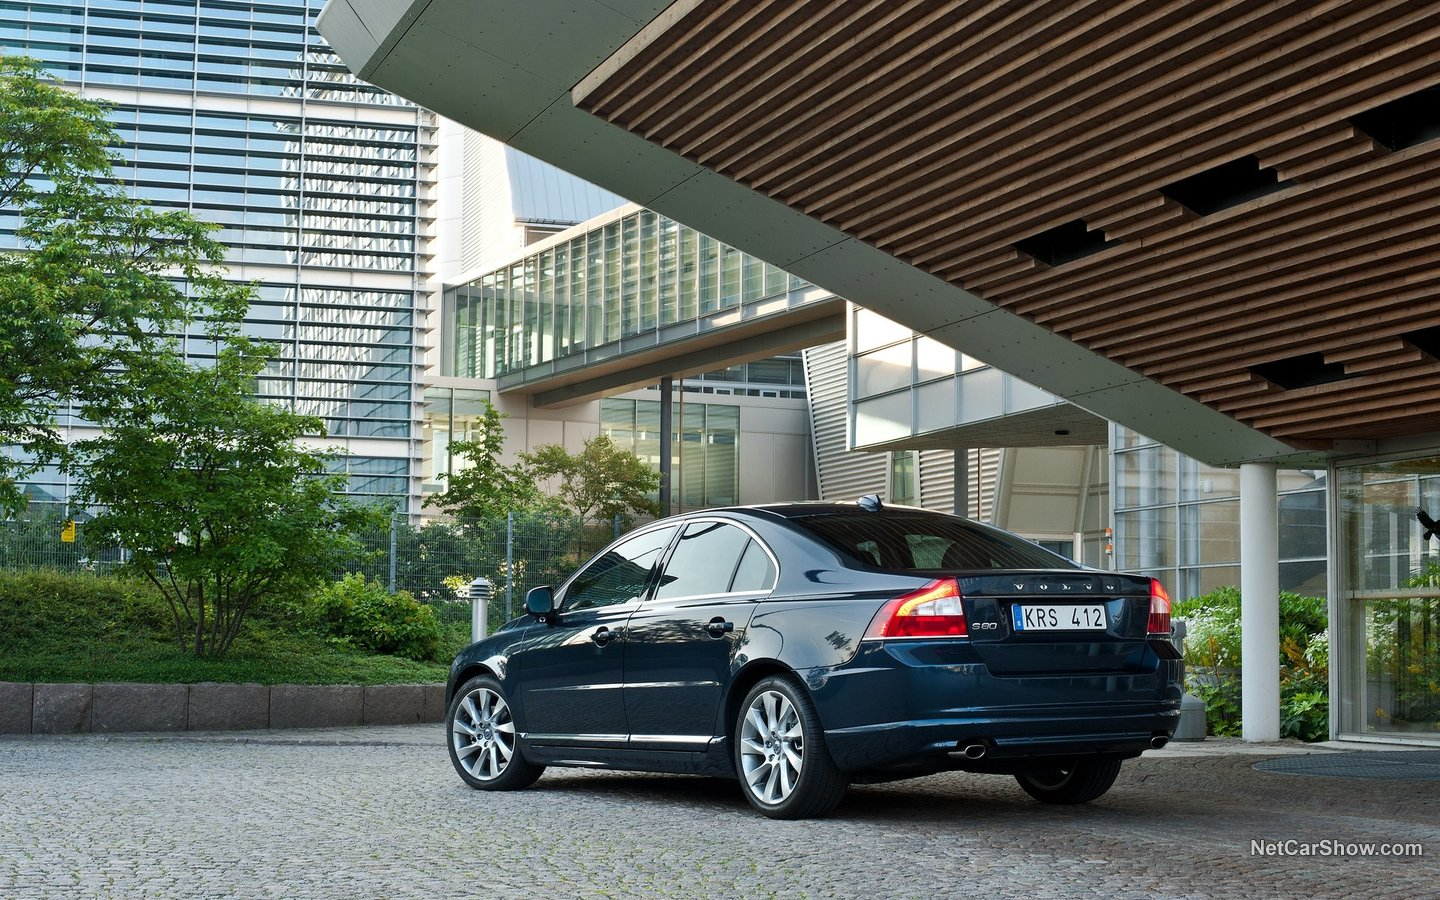 Volvo S80 2010 8d46f0a5